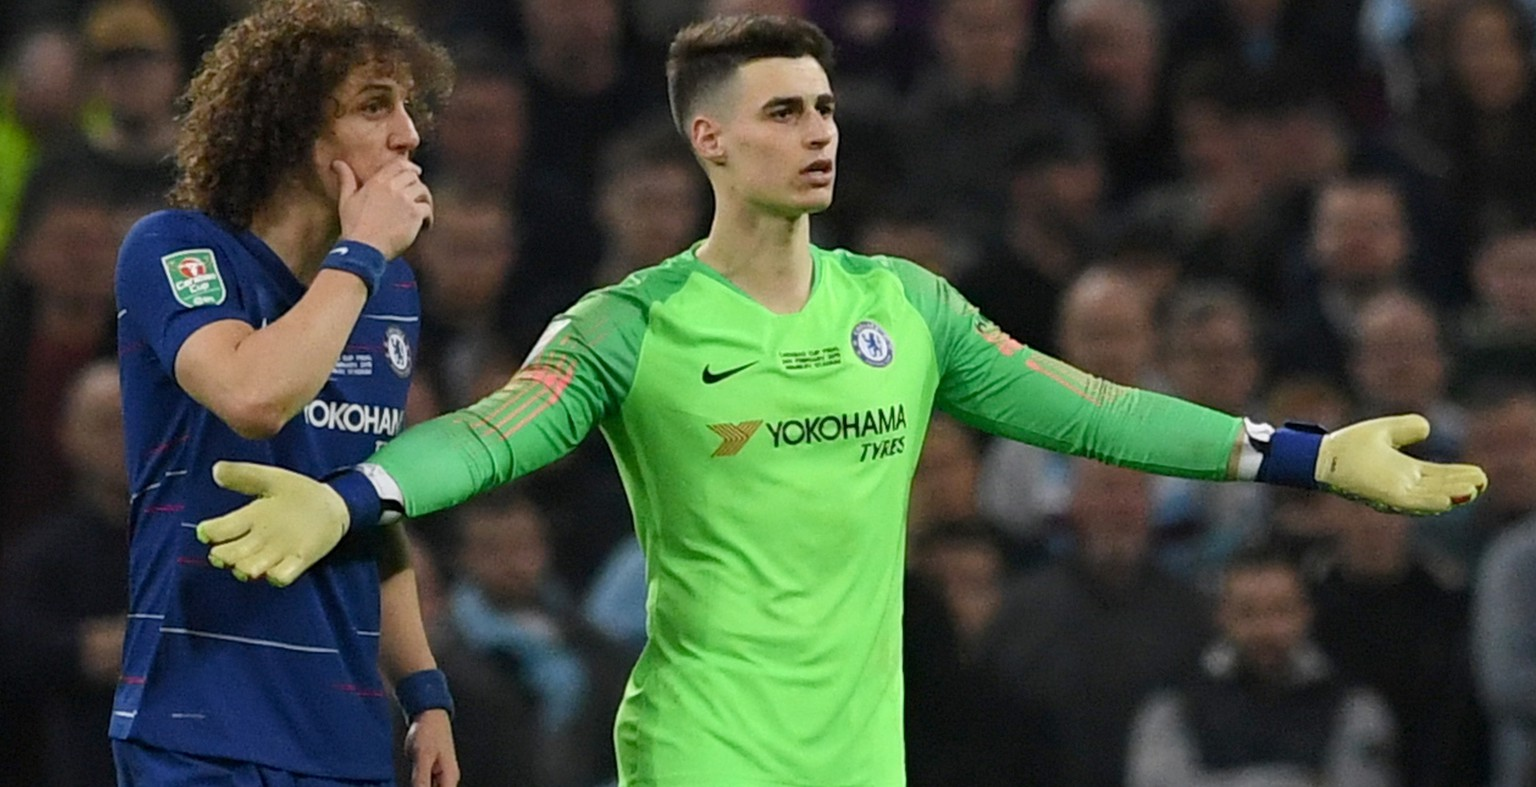 epa07393935 Chelsea's goalkeeper Kepa Arrizabalaga (R) reacts as he should be substituted during extra time of the English League Cup final between Chelsea FC and Manchester City at Wembley stadium in London, Britain, 24 February 2019.  EPA/NEIL HALL EDITORIAL USE ONLY. No use with unauthorized audio, video, data, fixture lists, club/league logos or 'live' services. Online in-match use limited to 120 images, no video emulation. No use in betting, games or single club/league/player publications